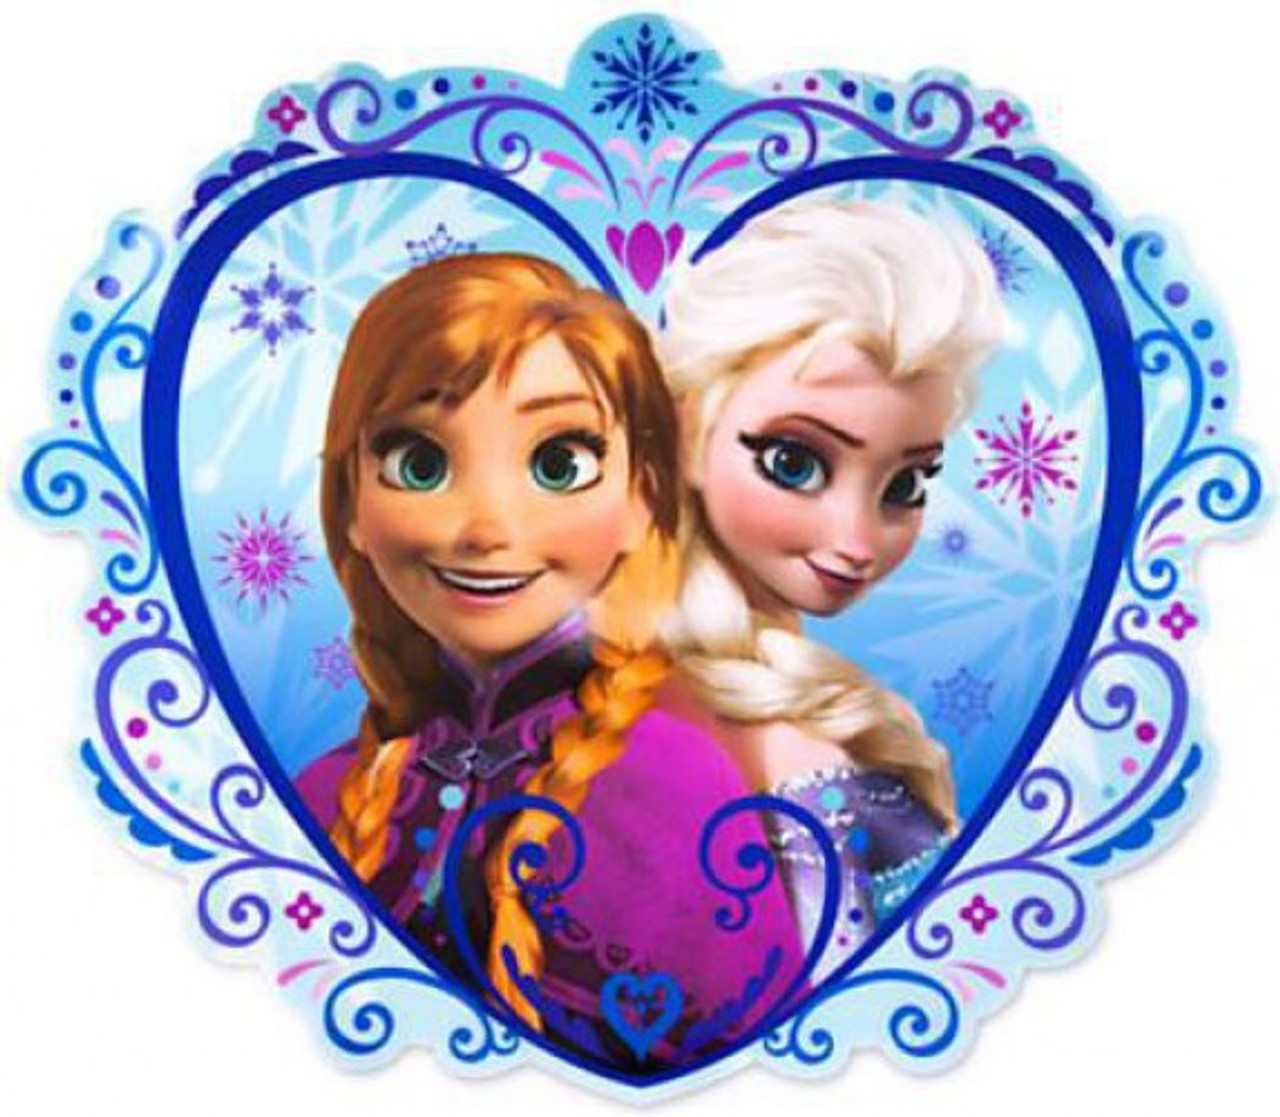 Disney Frozen Anna & Elsa Placemat Exclusive Accessory